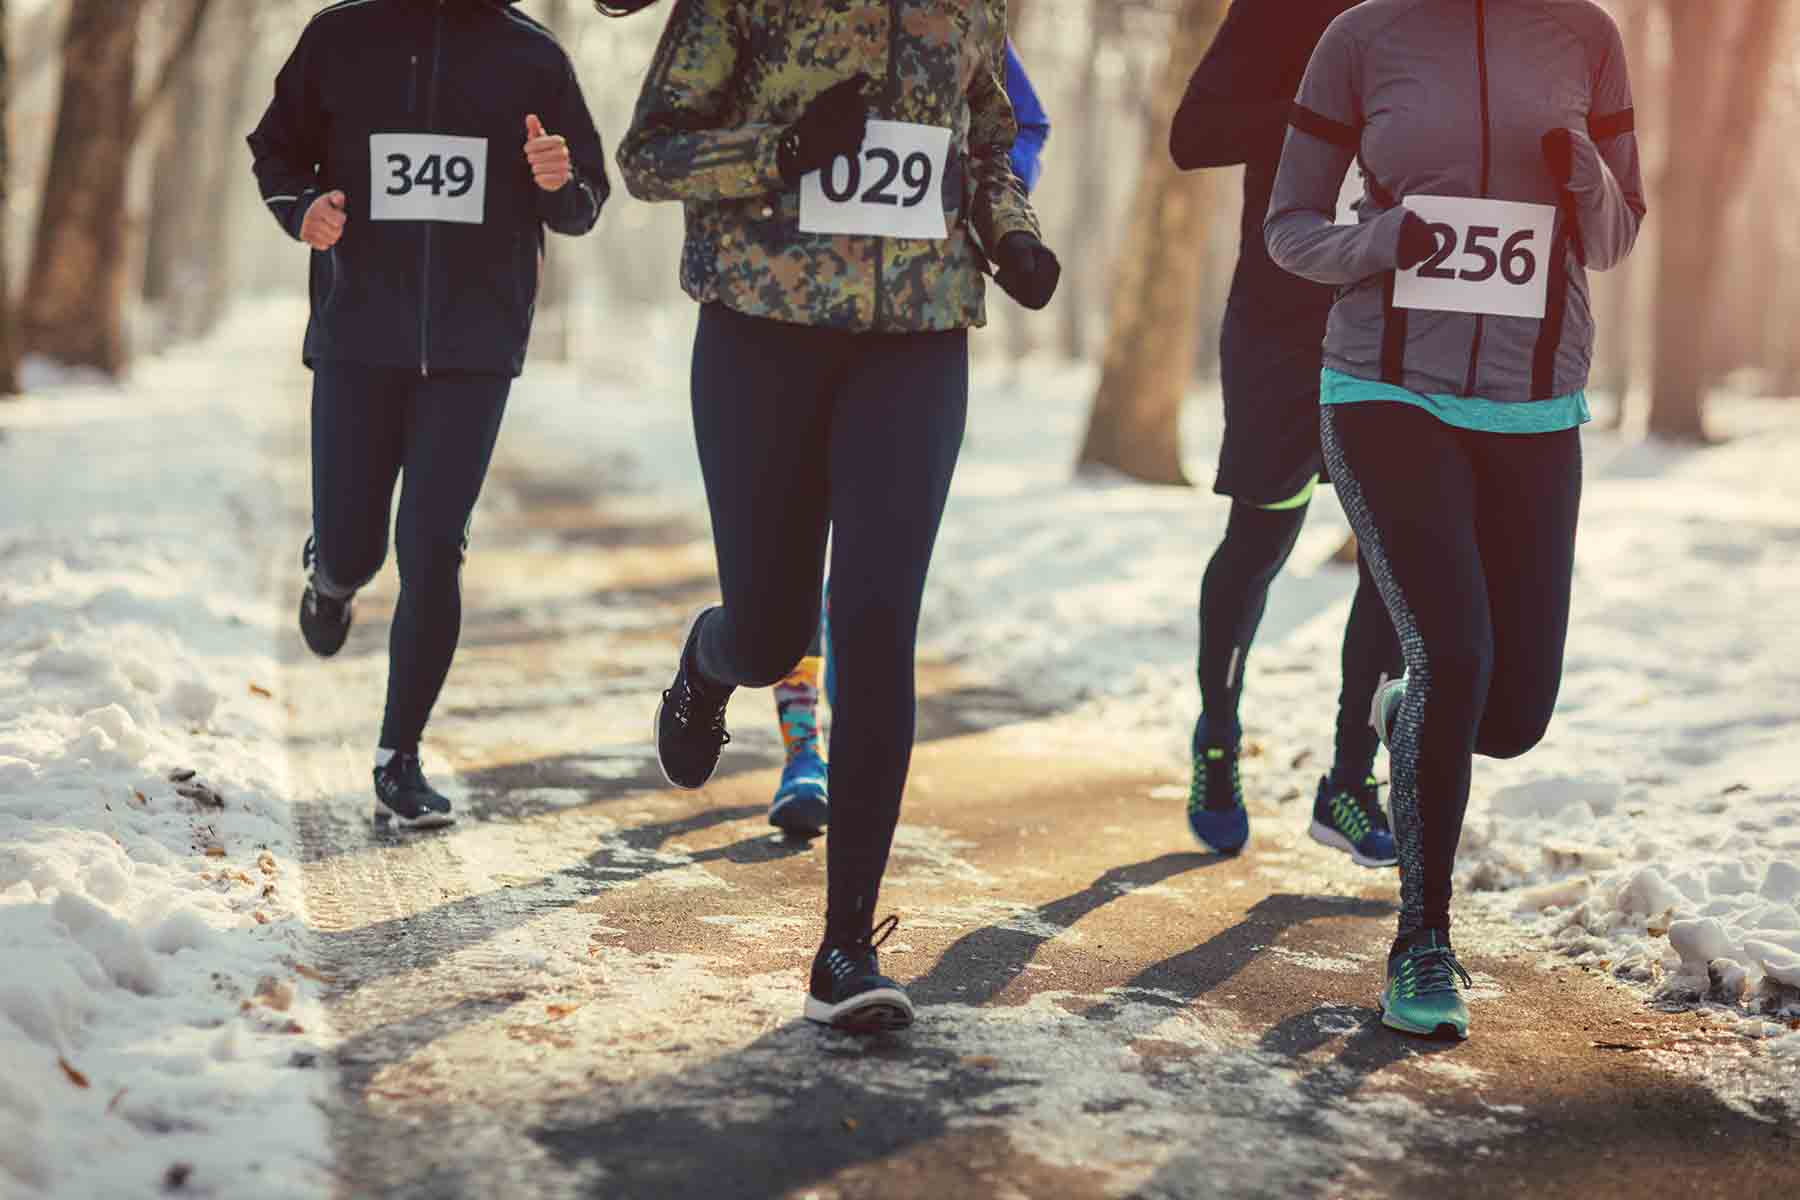 Runners competing in the Mammoth Turkey Trot